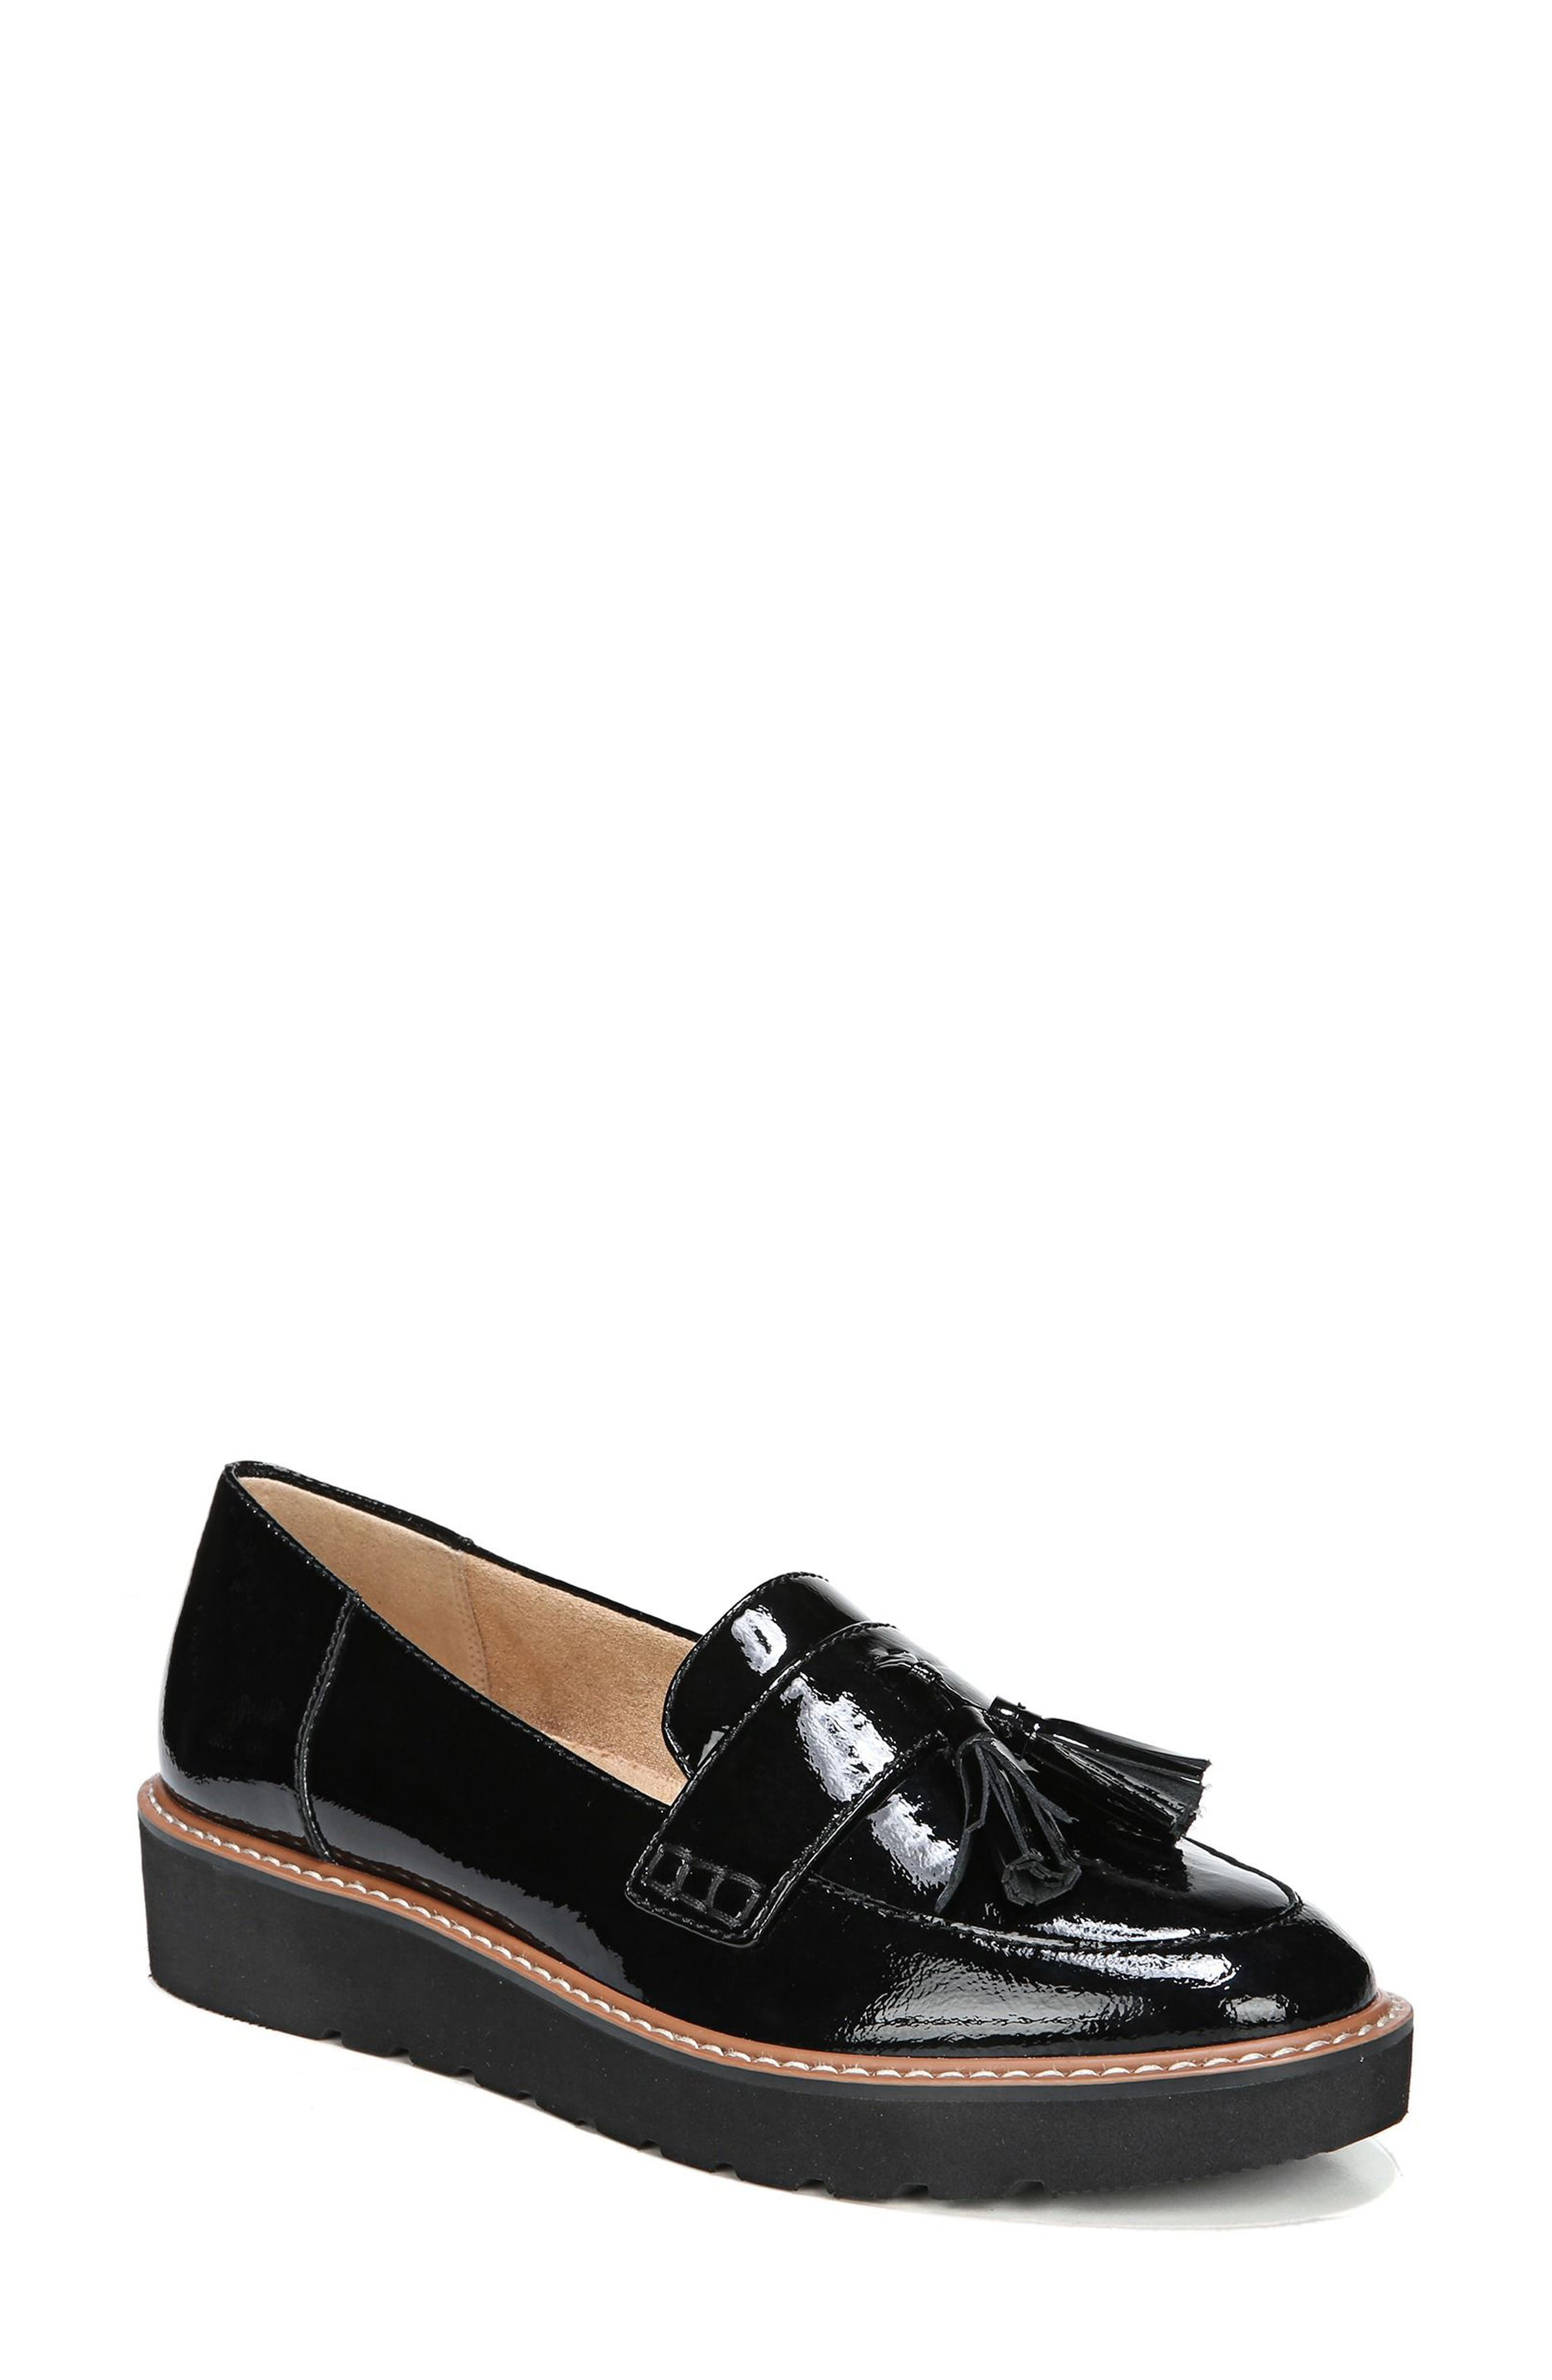 Naturalizer August Loafer, Black